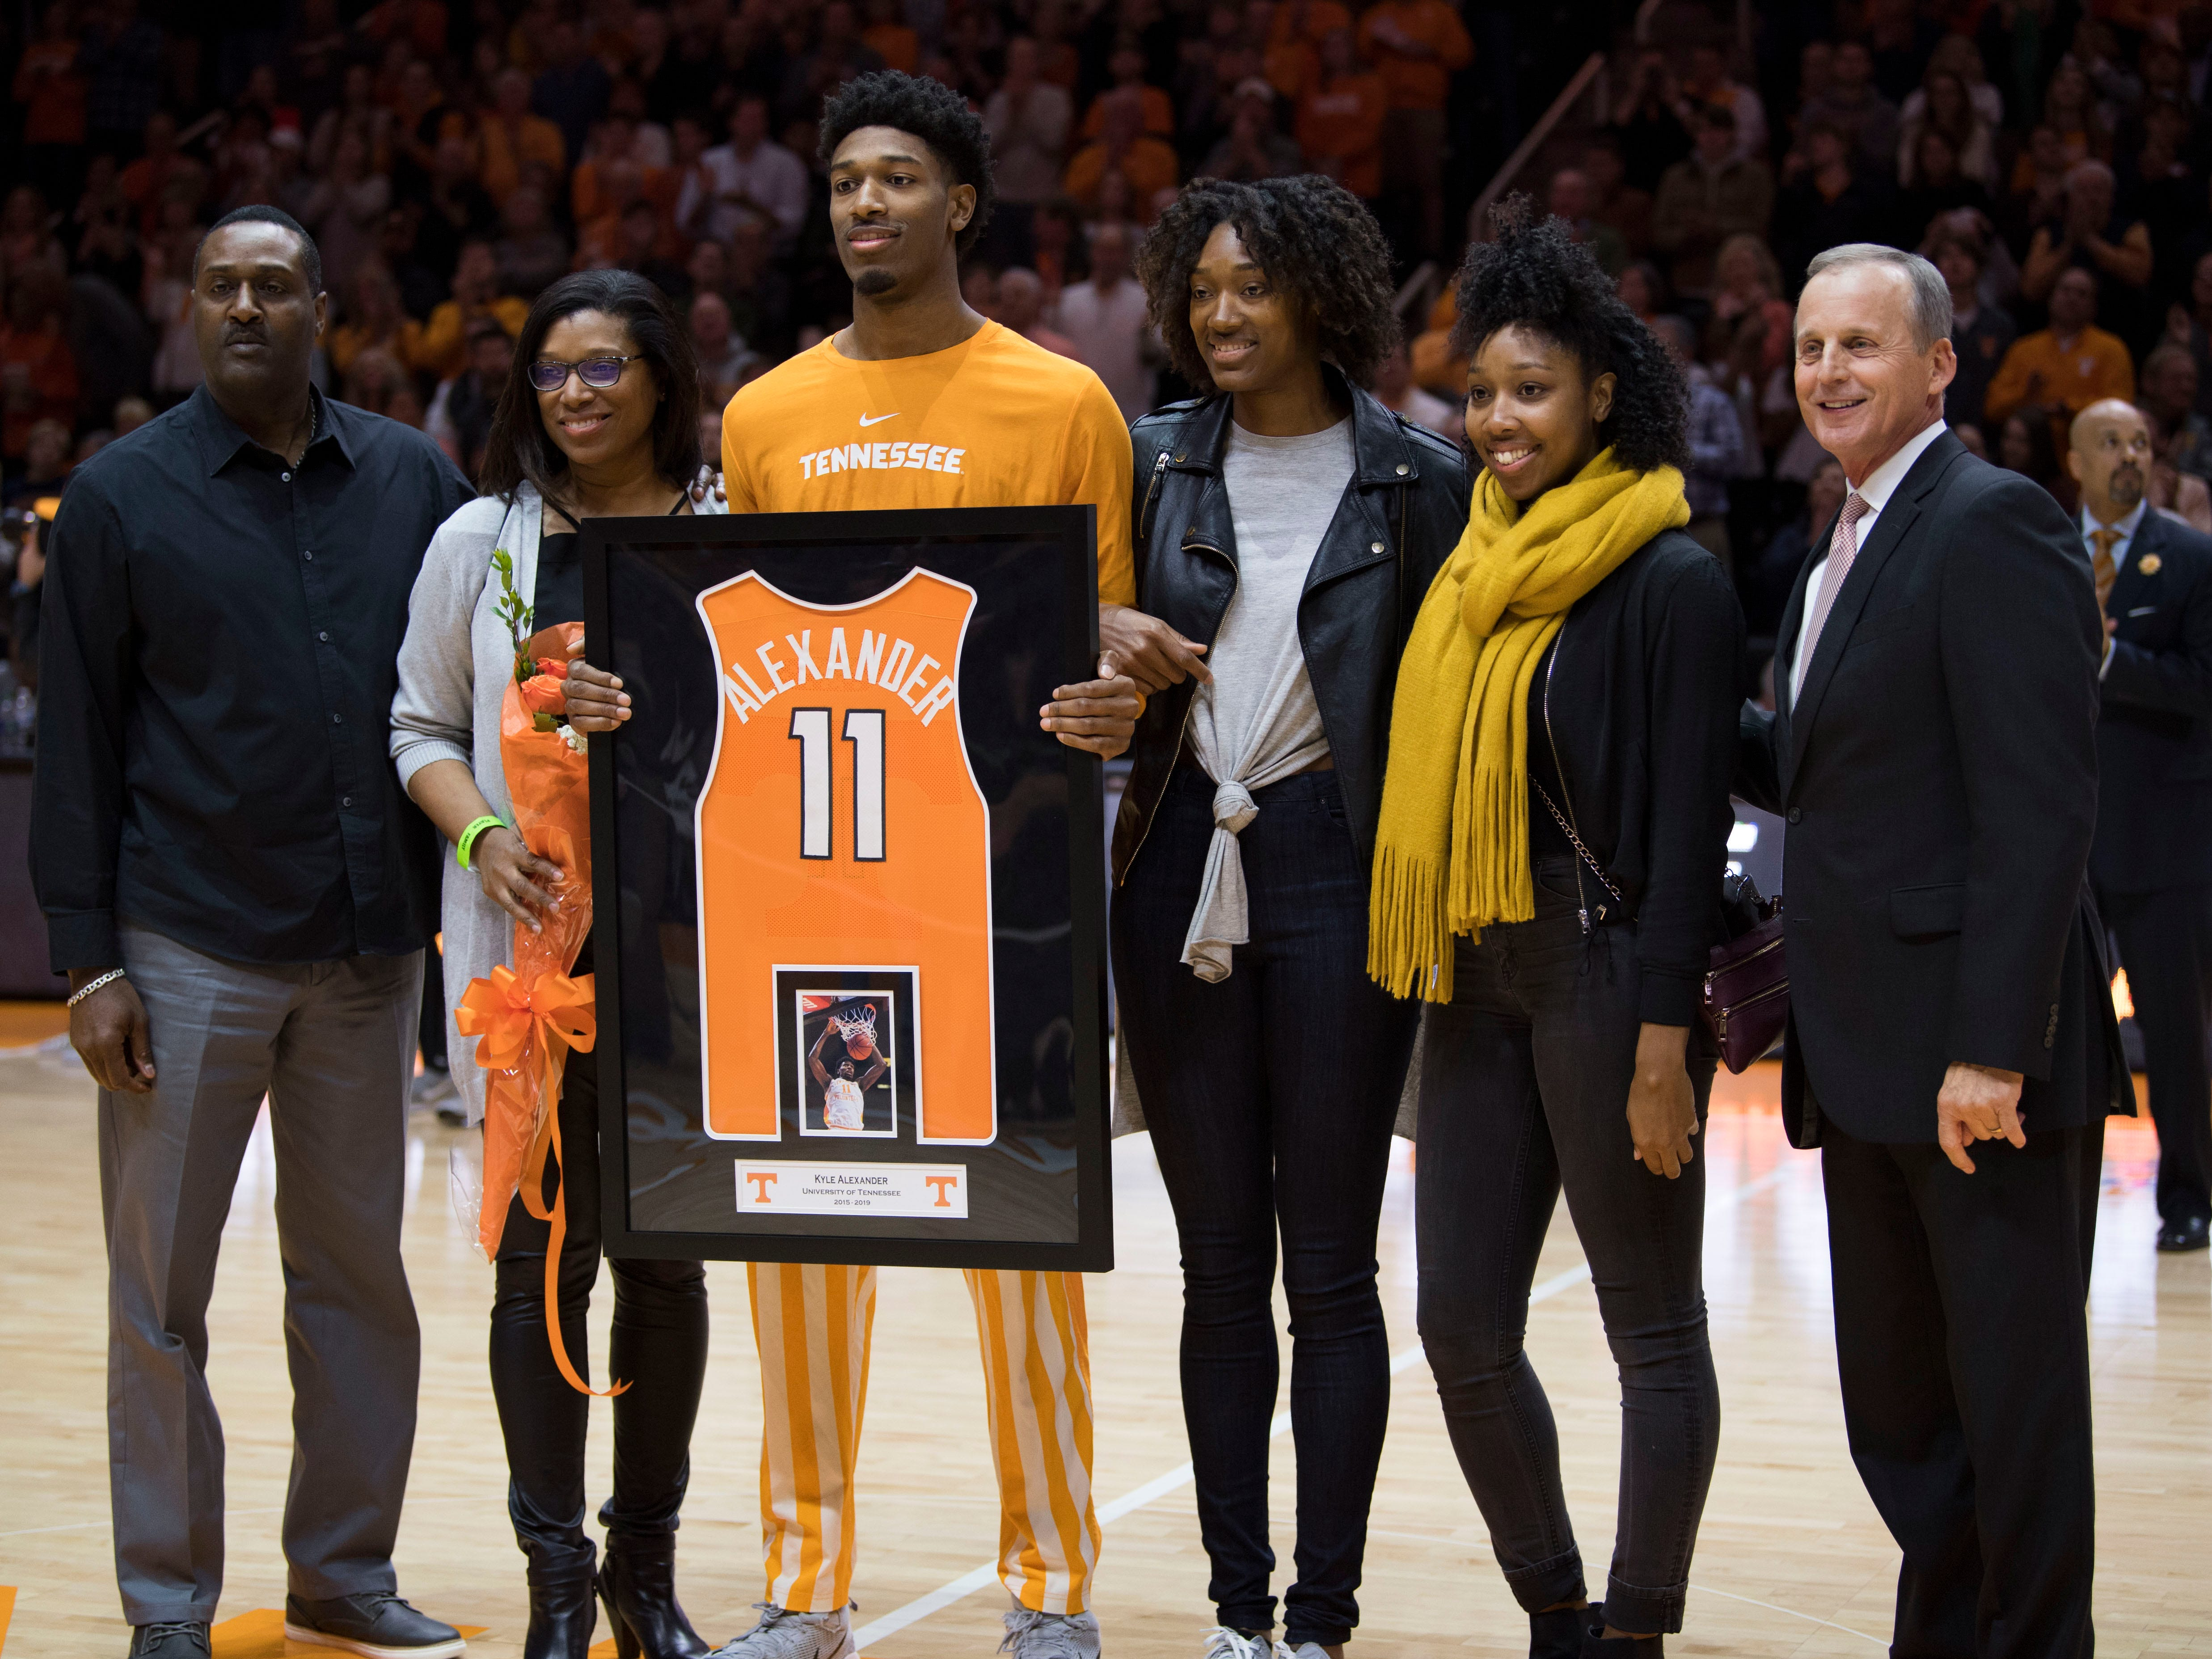 Tennessee forward Kyle Alexander (11) is recognized during Senior Night before Tennessee's home finale against Mississippi State at Thompson-Boling Arena in Knoxville on Tuesday, March 5, 2019.